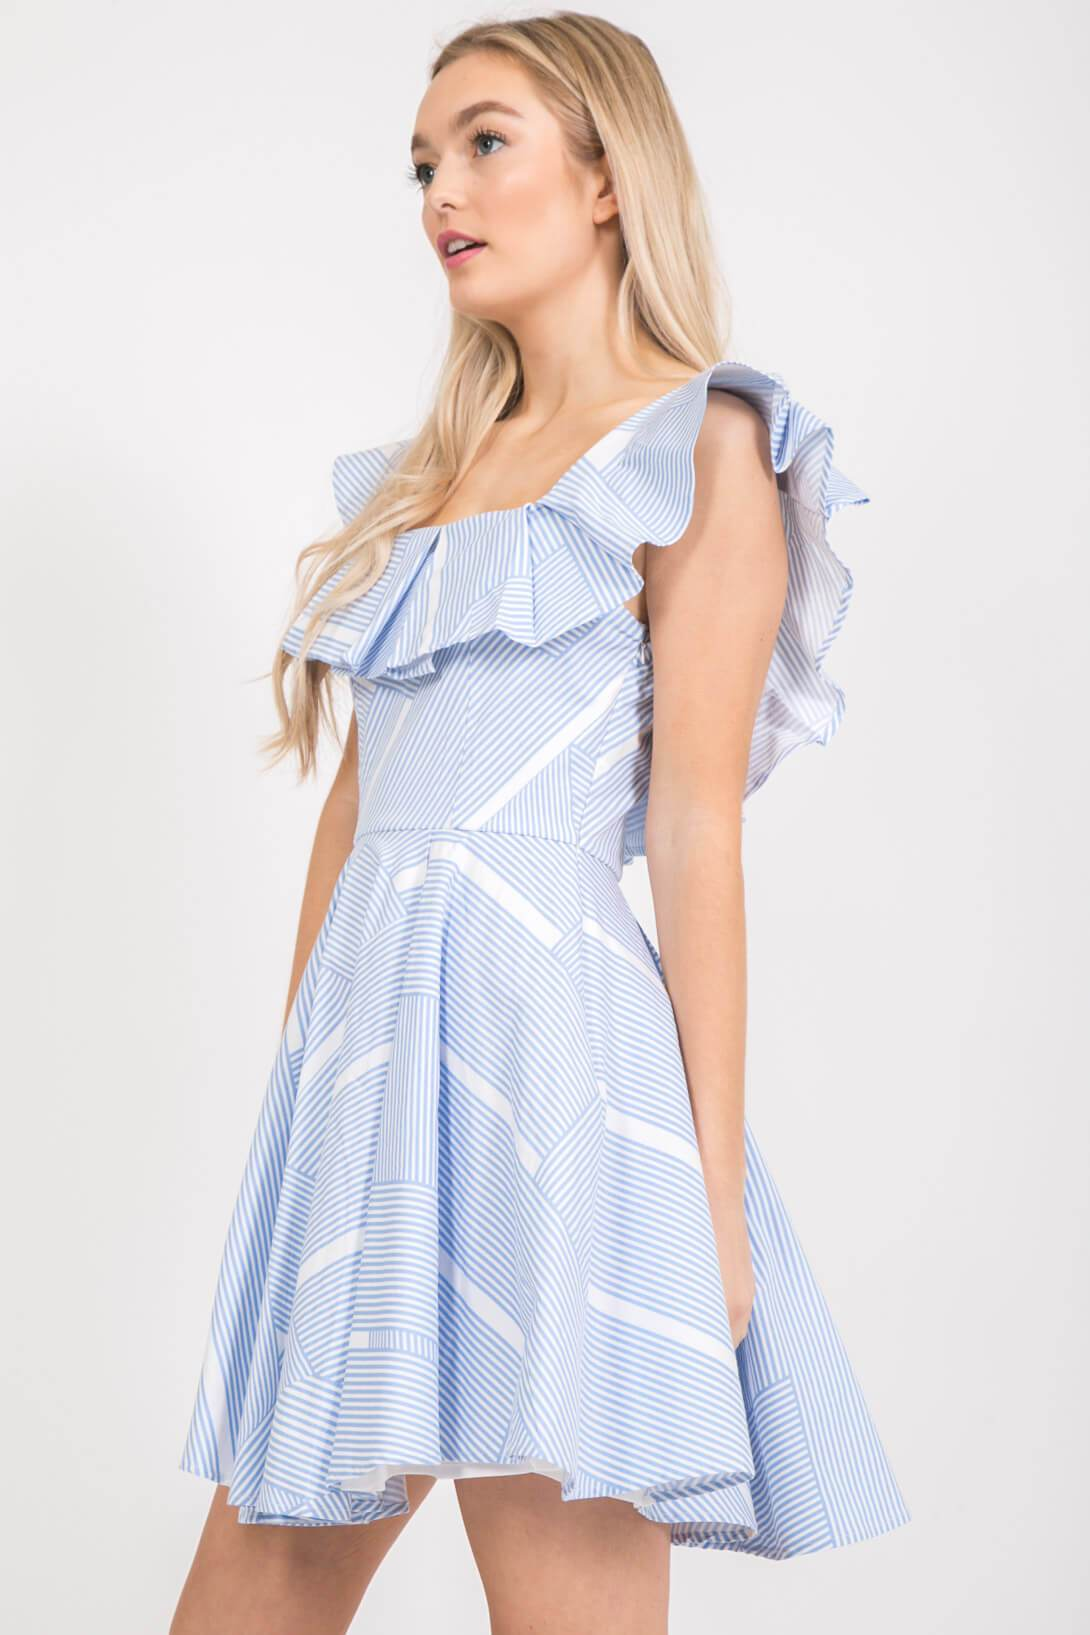 Light Blue Fit and Flare Dress Dress